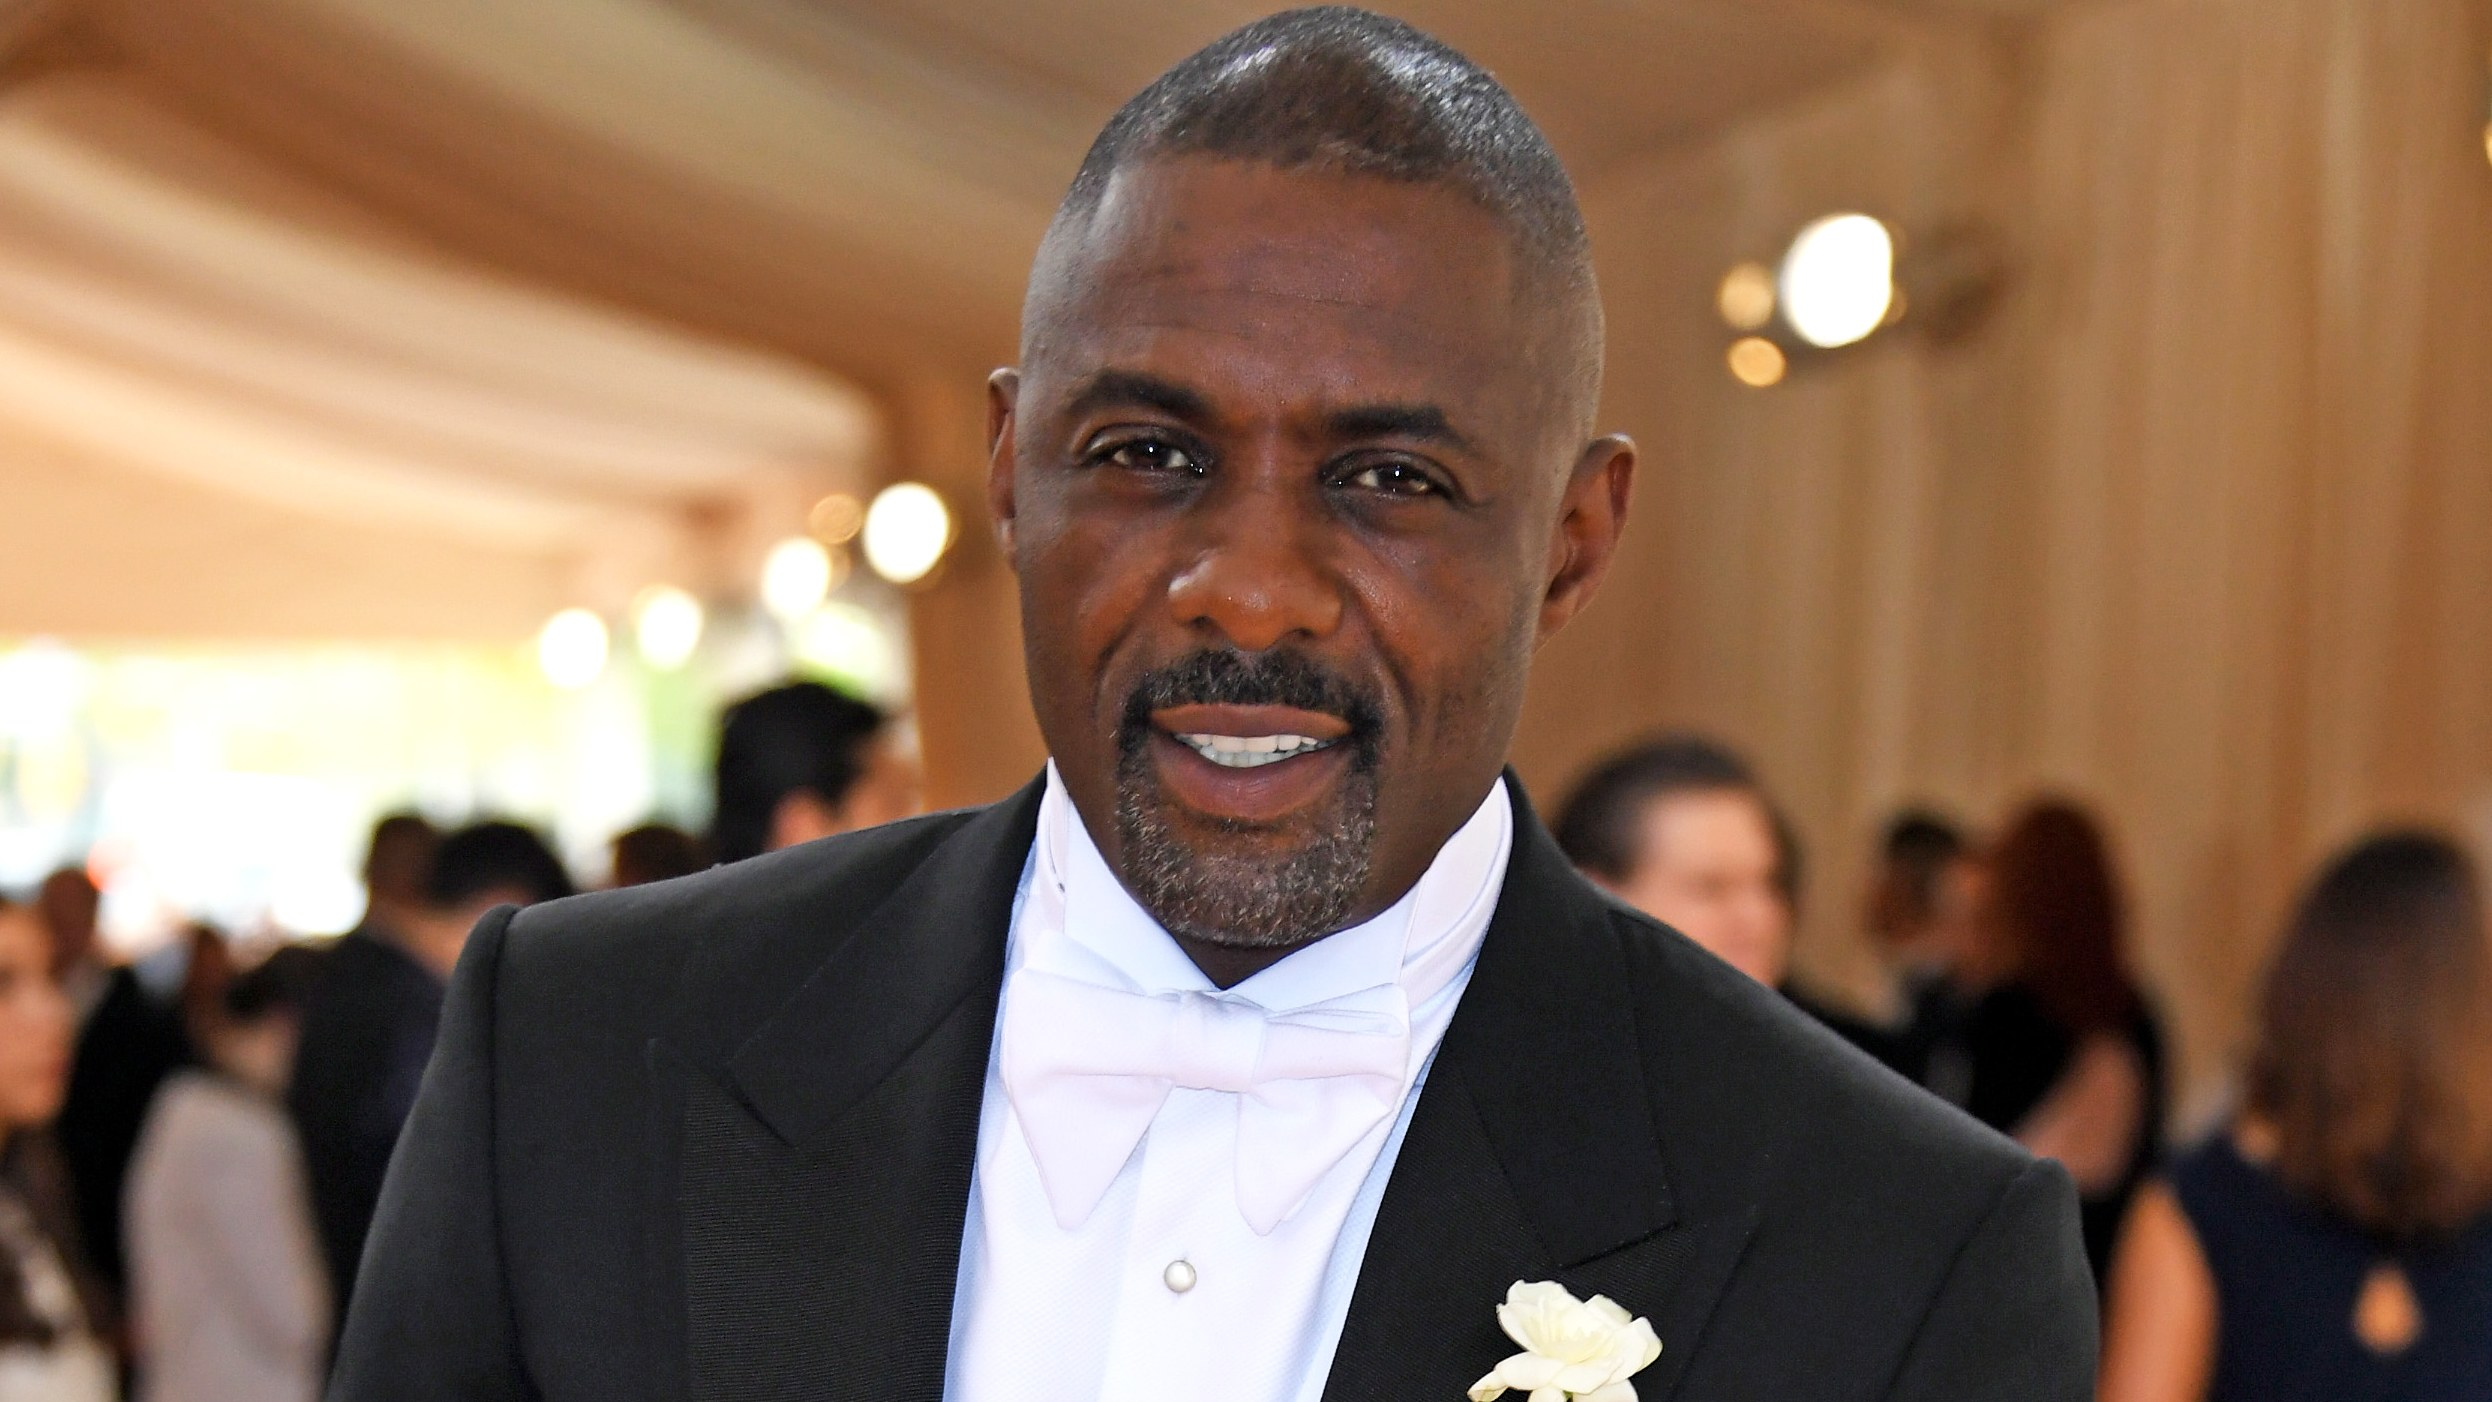 Idris Elba at the MET ball, source GQ/Getty